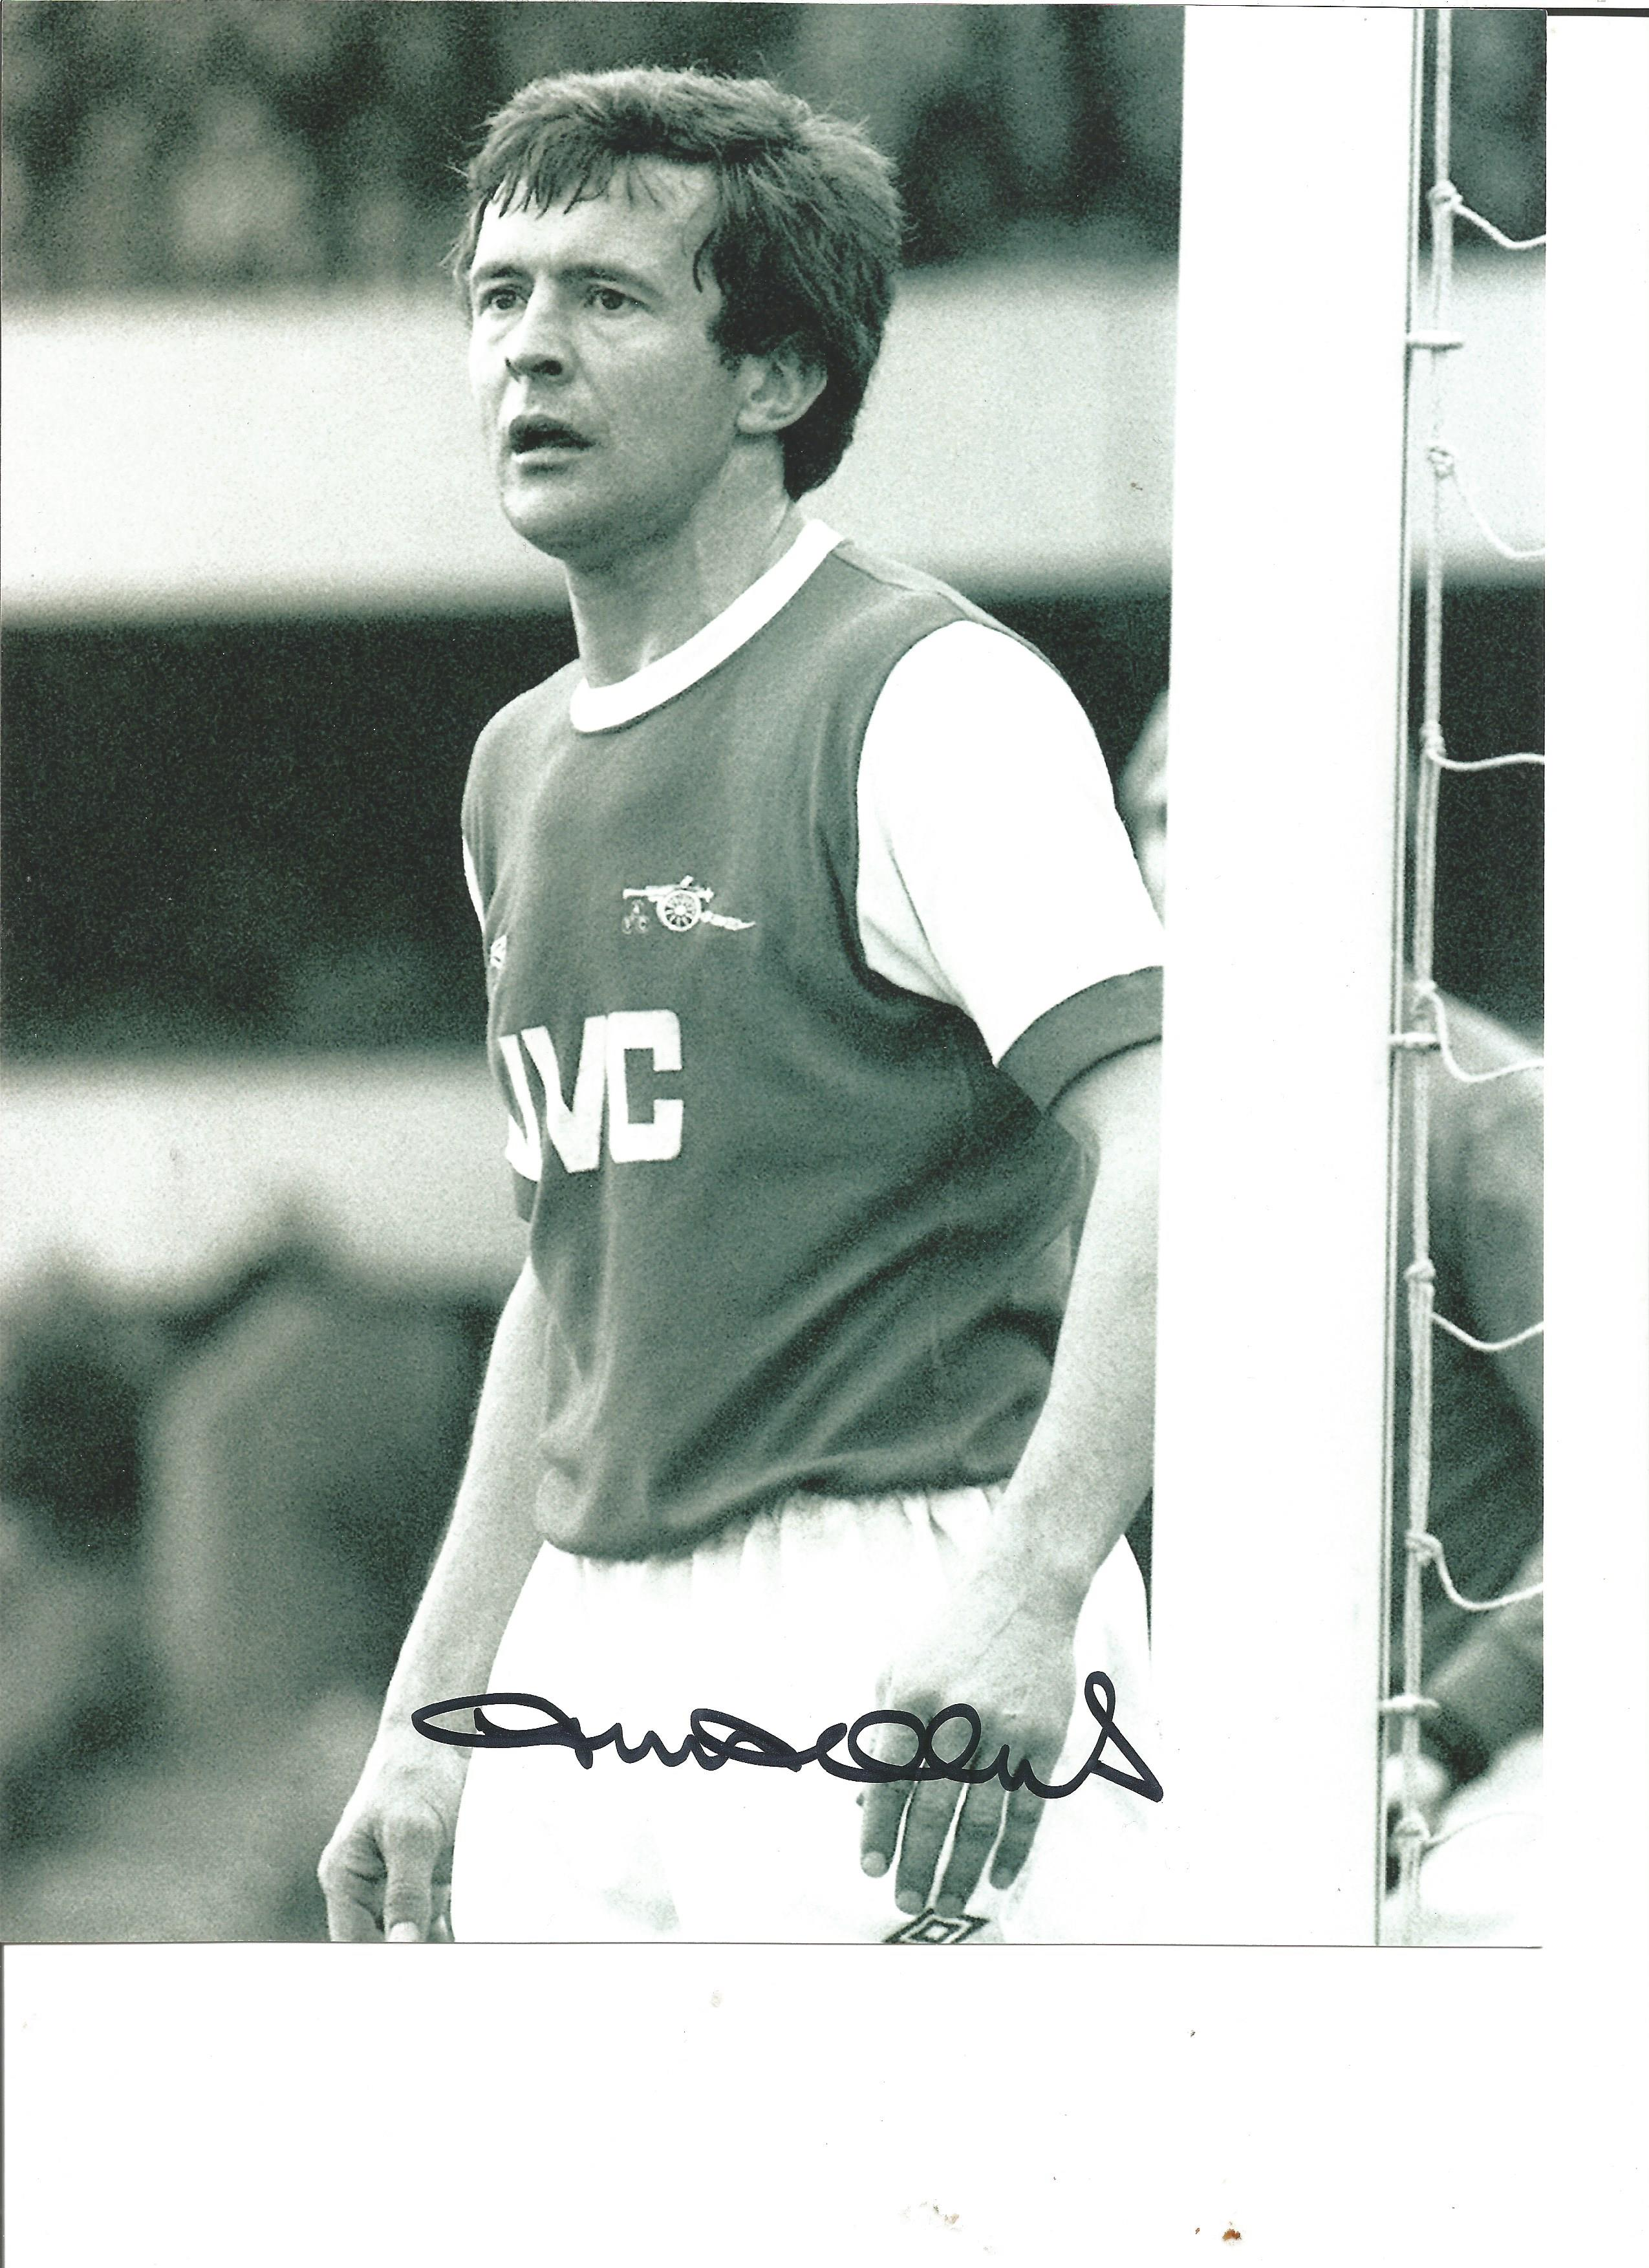 Football John Hollins signed 10x8 black and white photo pictured while playing for Arsenal. John